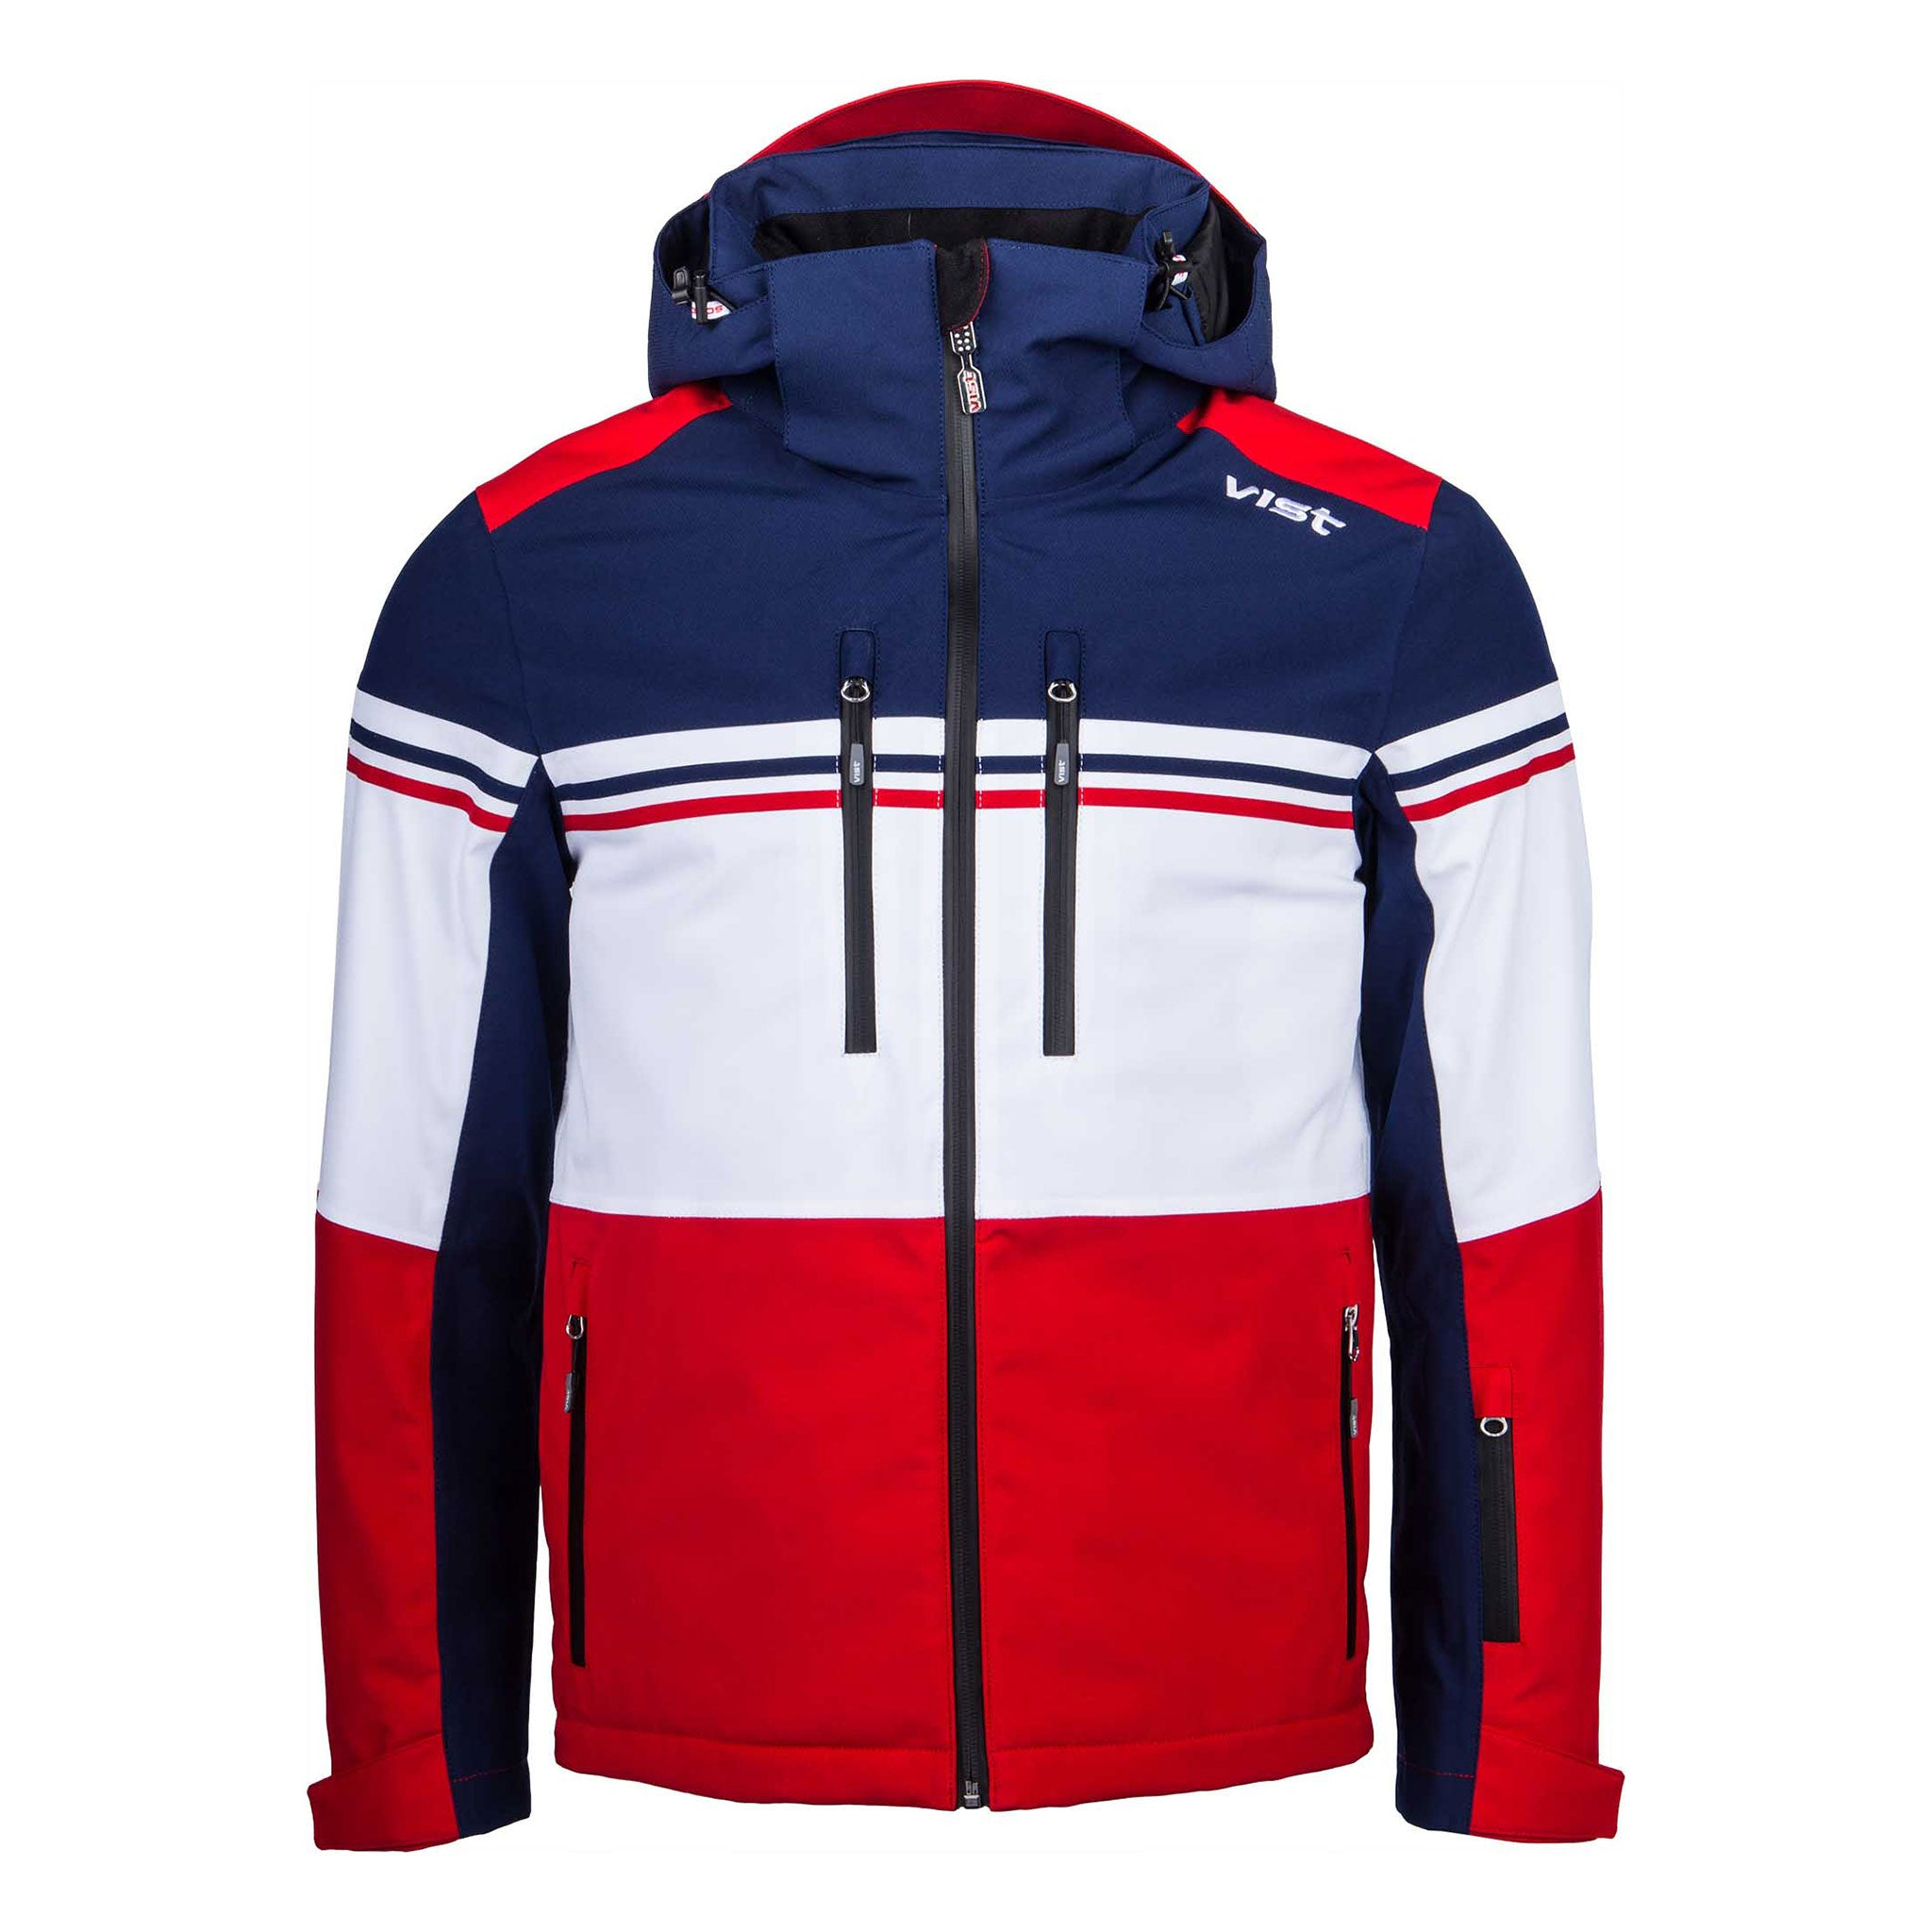 KINGMASTER DOWN SKI JACKET MAN in DEEP OCEAN-RUBY-WHITE